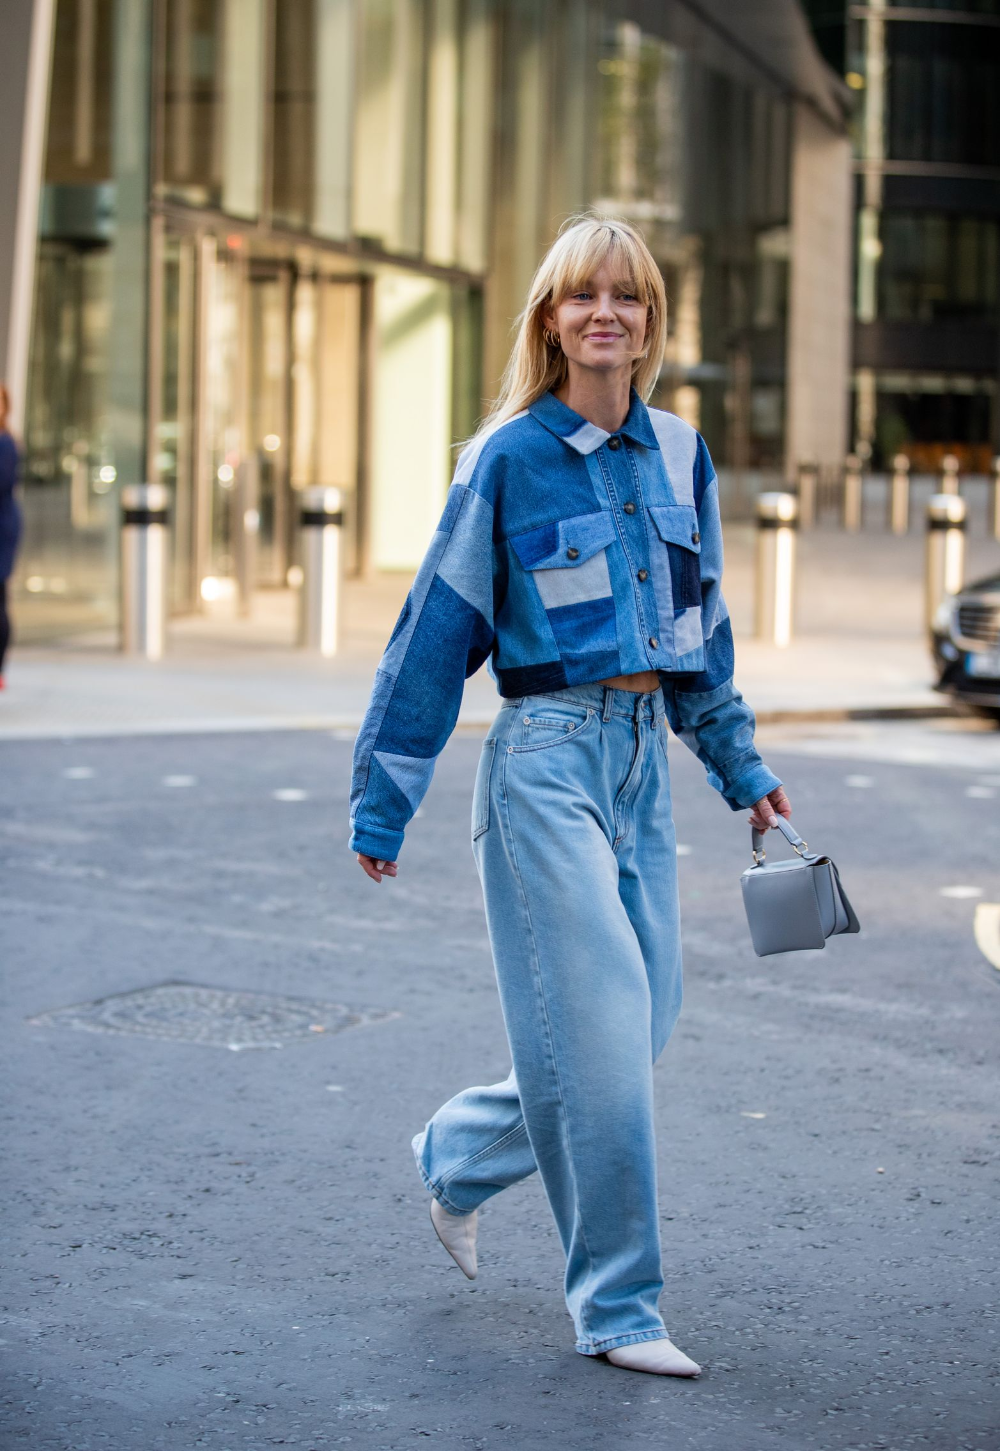 The Best Street Style At London Fashion Week SS21